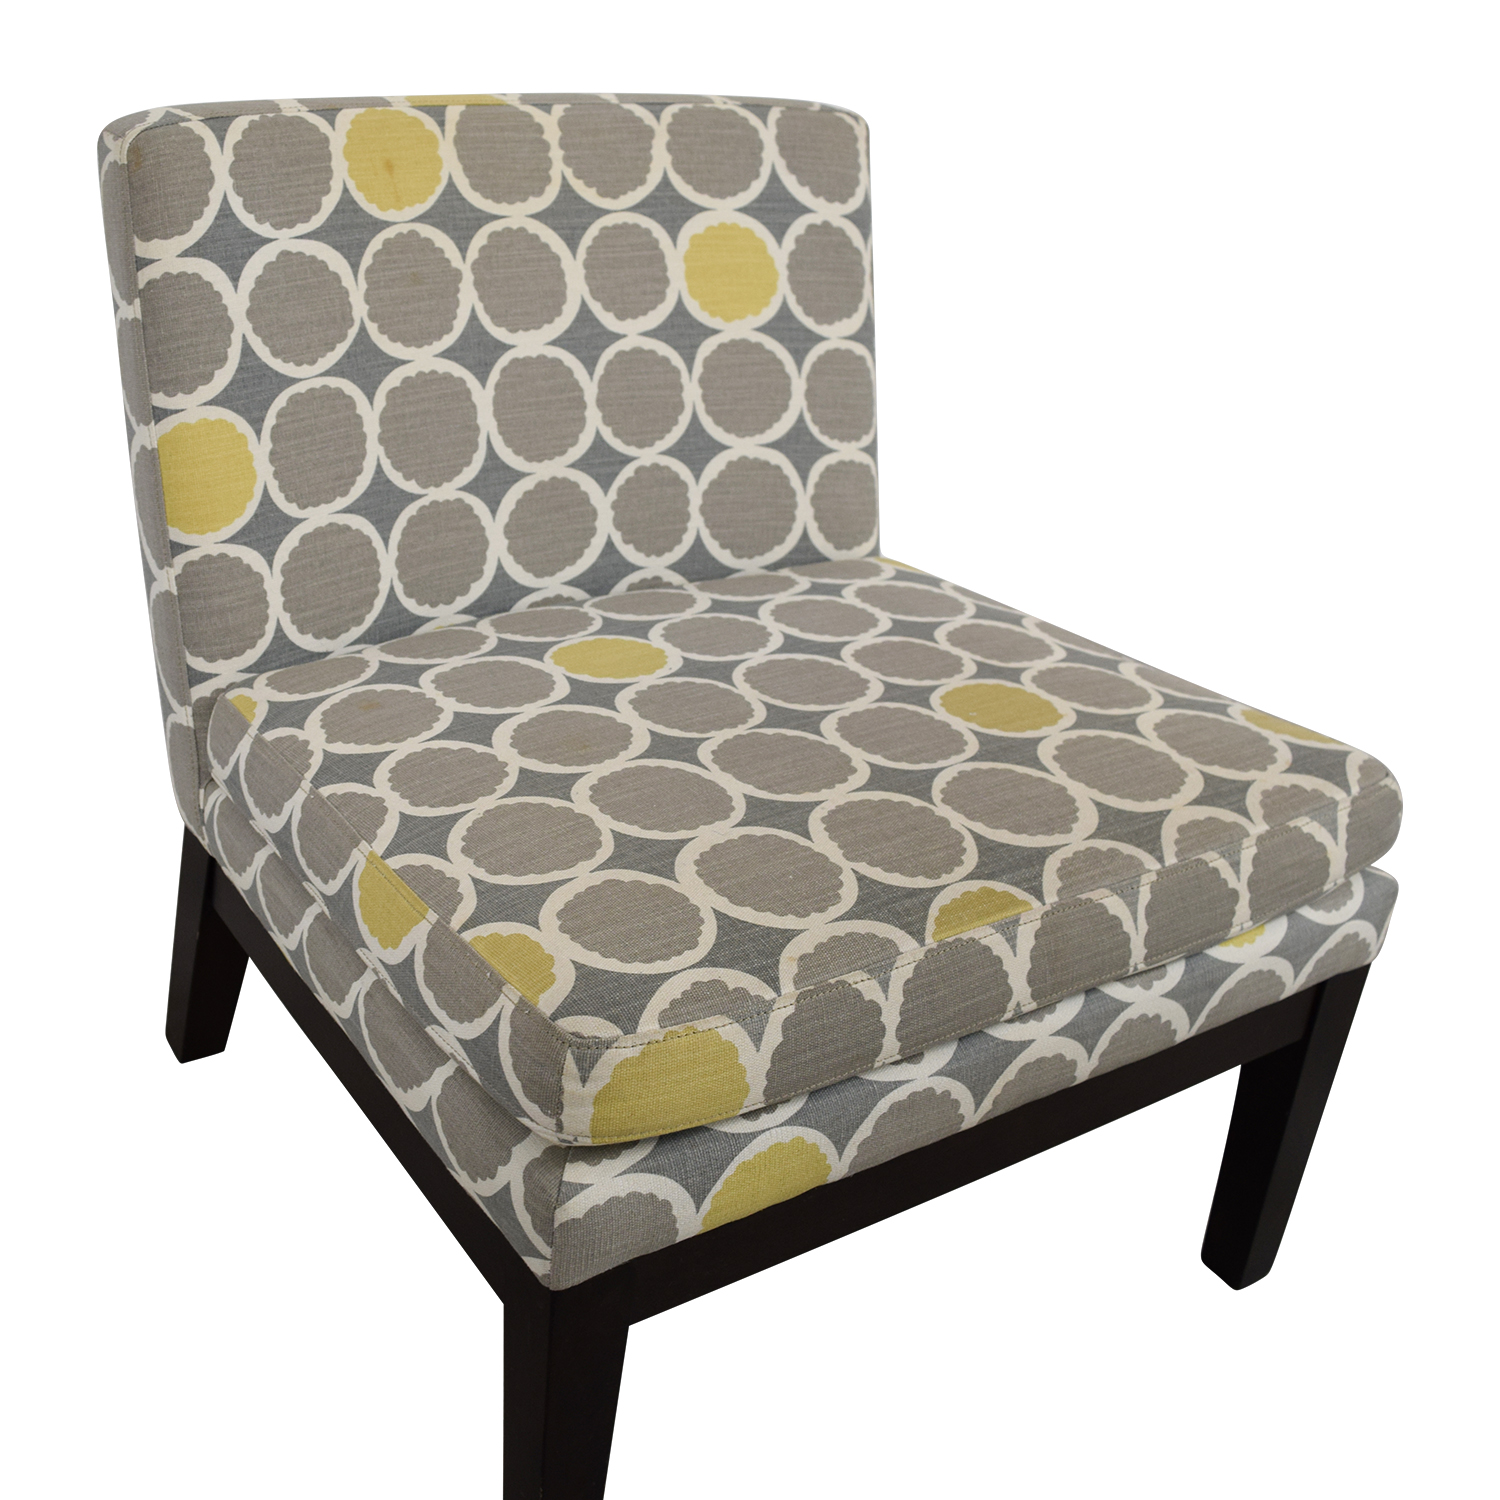 Yellow And Grey Accent Chair 72 Off West Elm West Elm Grey Yellow And White Accent